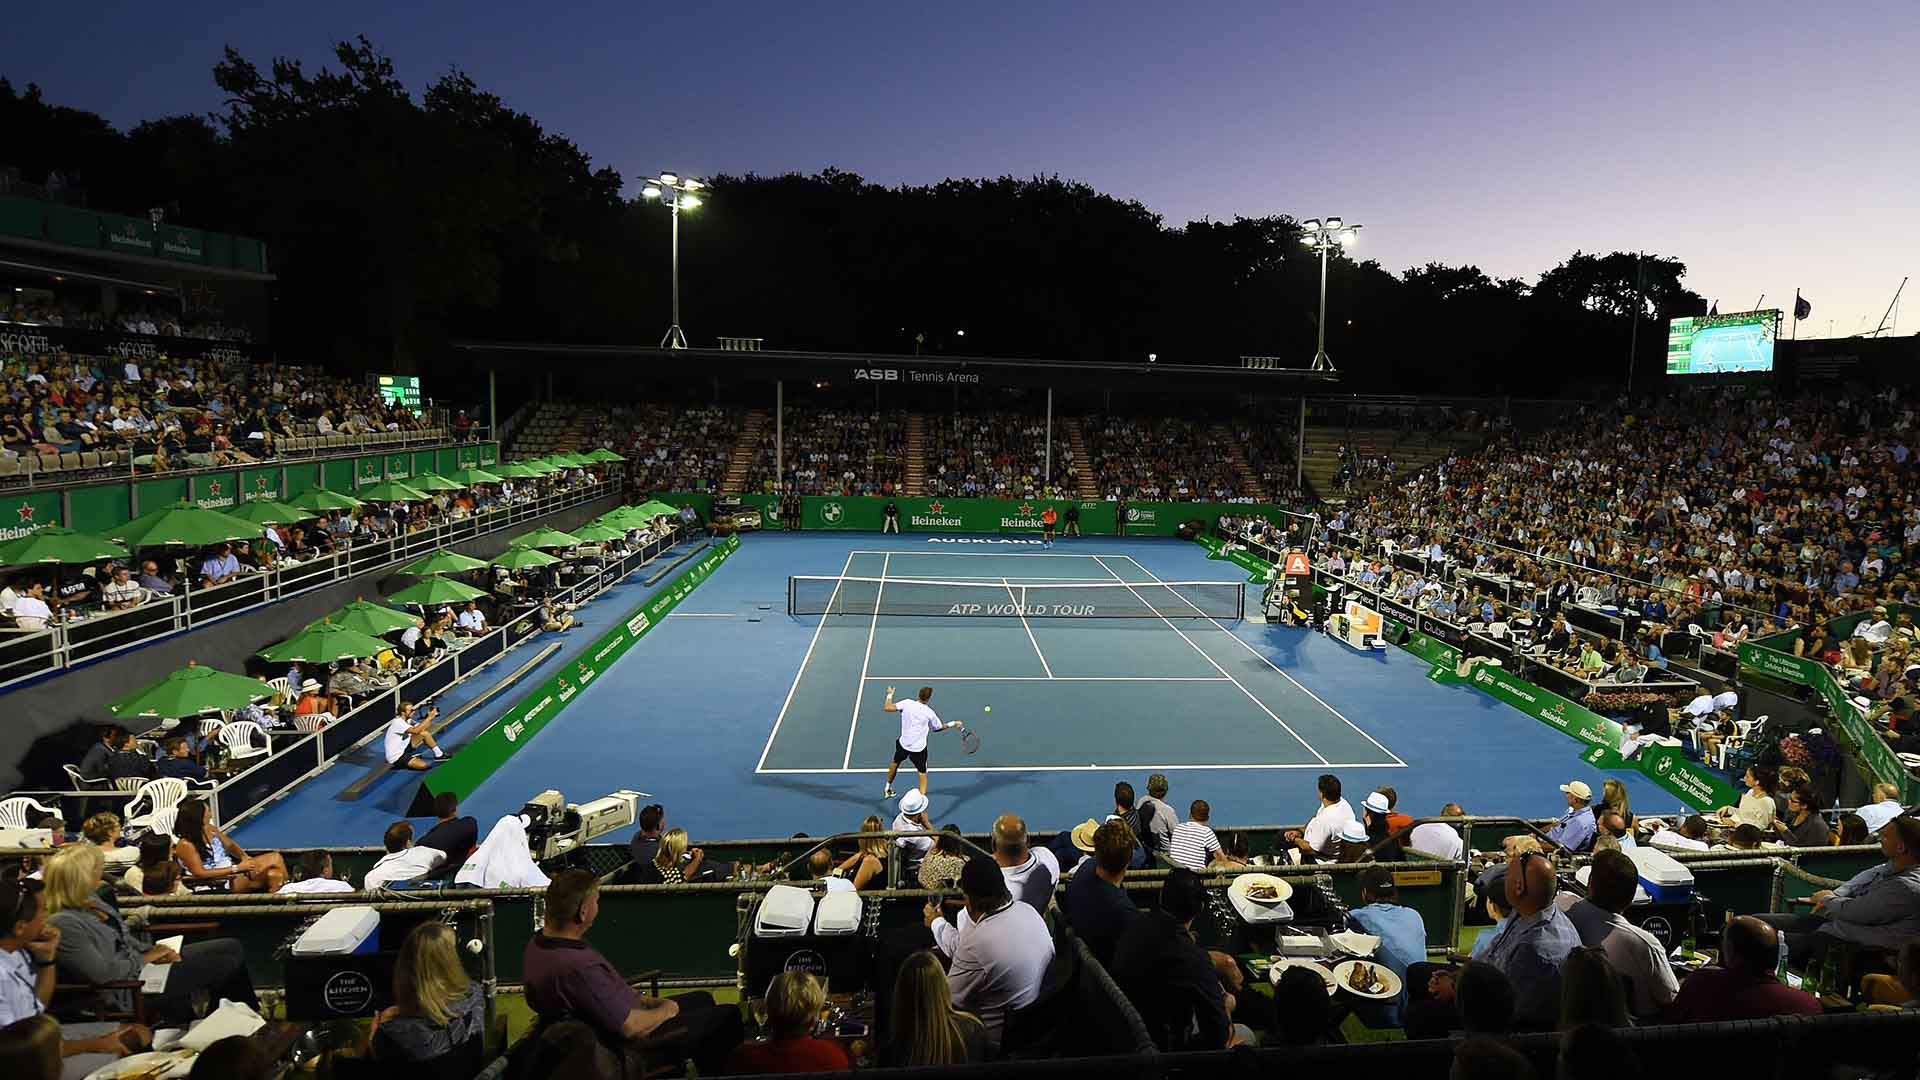 General view during the Michael Venus match on Day 2 at the Heineken Open.